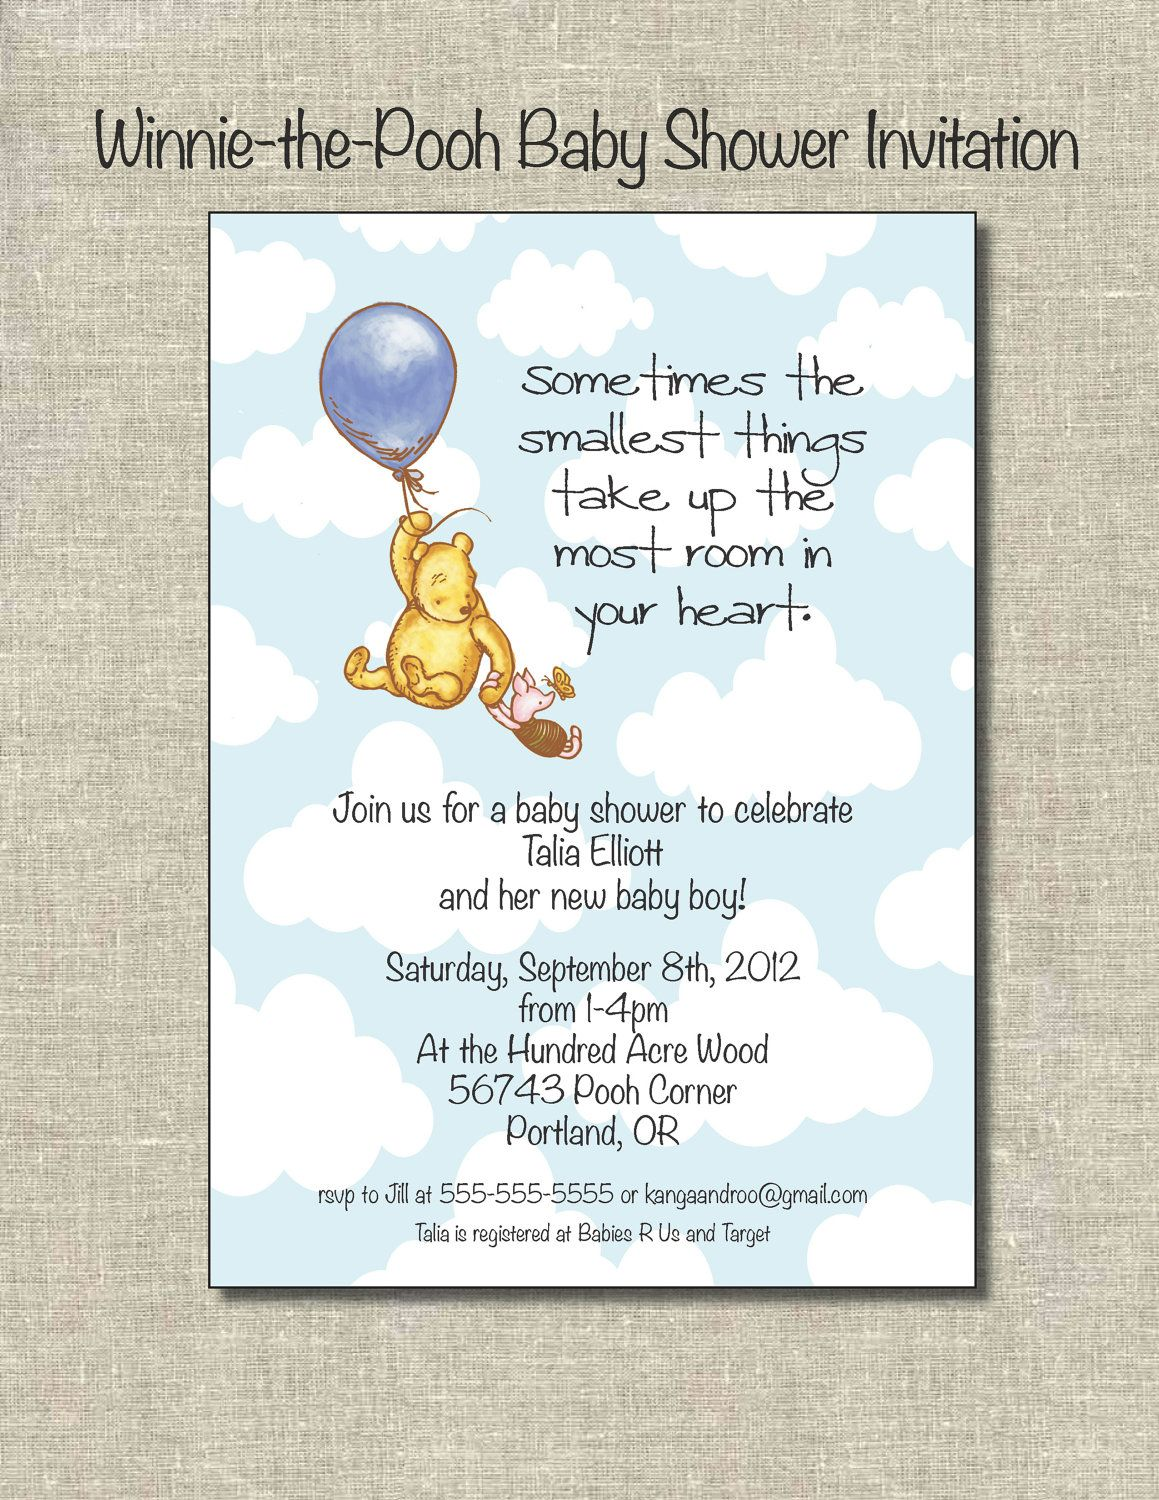 WinniethePooh Baby Shower Invitation by PrintablePartiesInc | Will ...